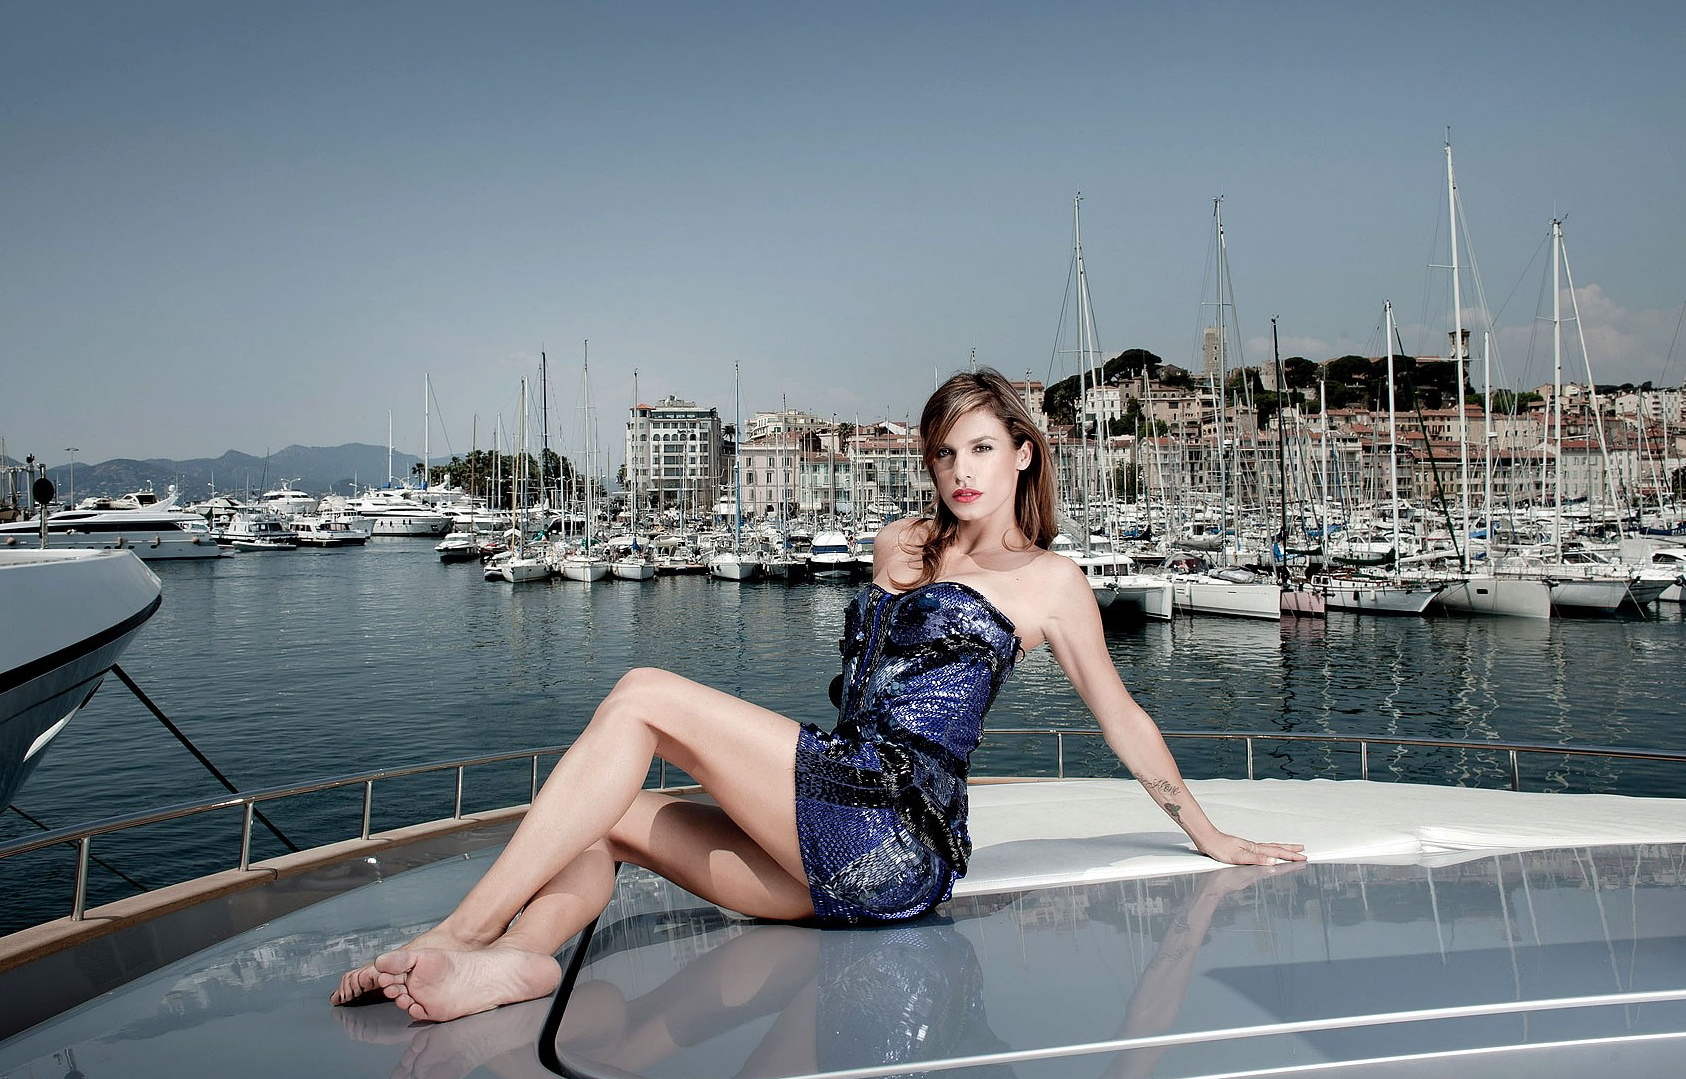 Feet Elisabetta Canalis naked (19 photo), Topless, Fappening, Selfie, lingerie 2006